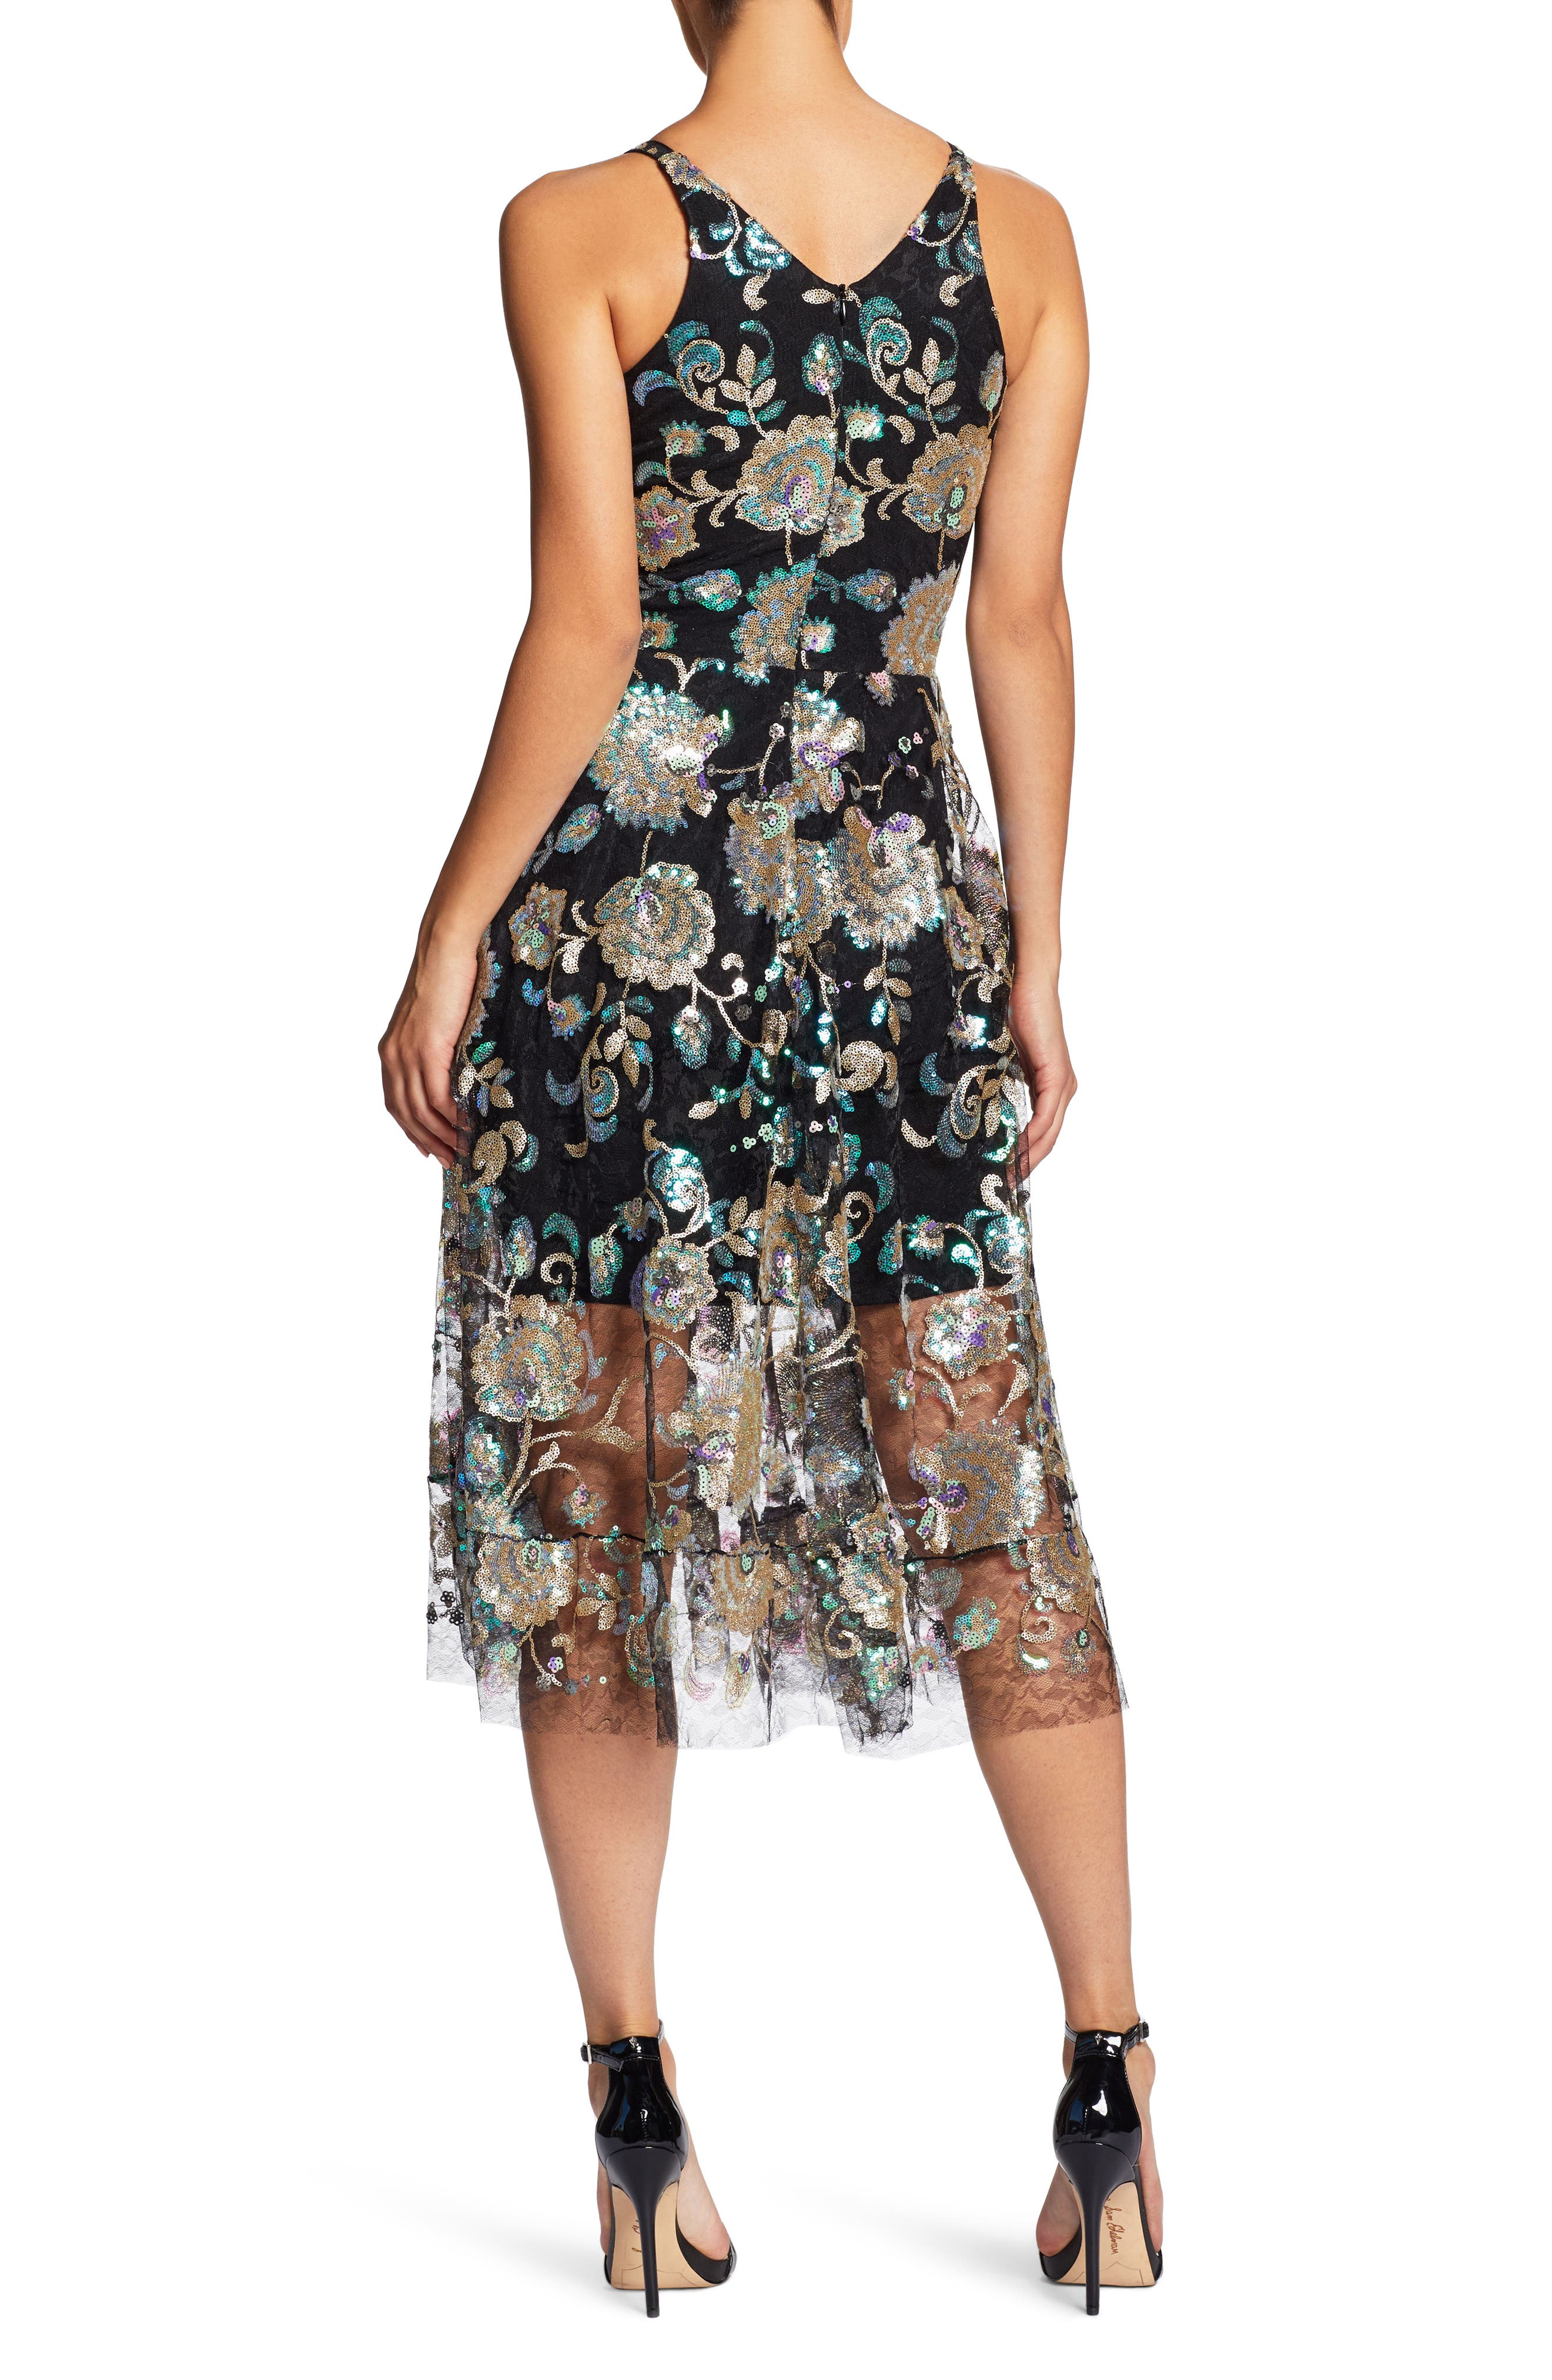 Audrey Sequin Embroidered Midi Dress,                             Alternate thumbnail 3, color,                             Black/ Iridescent Floral